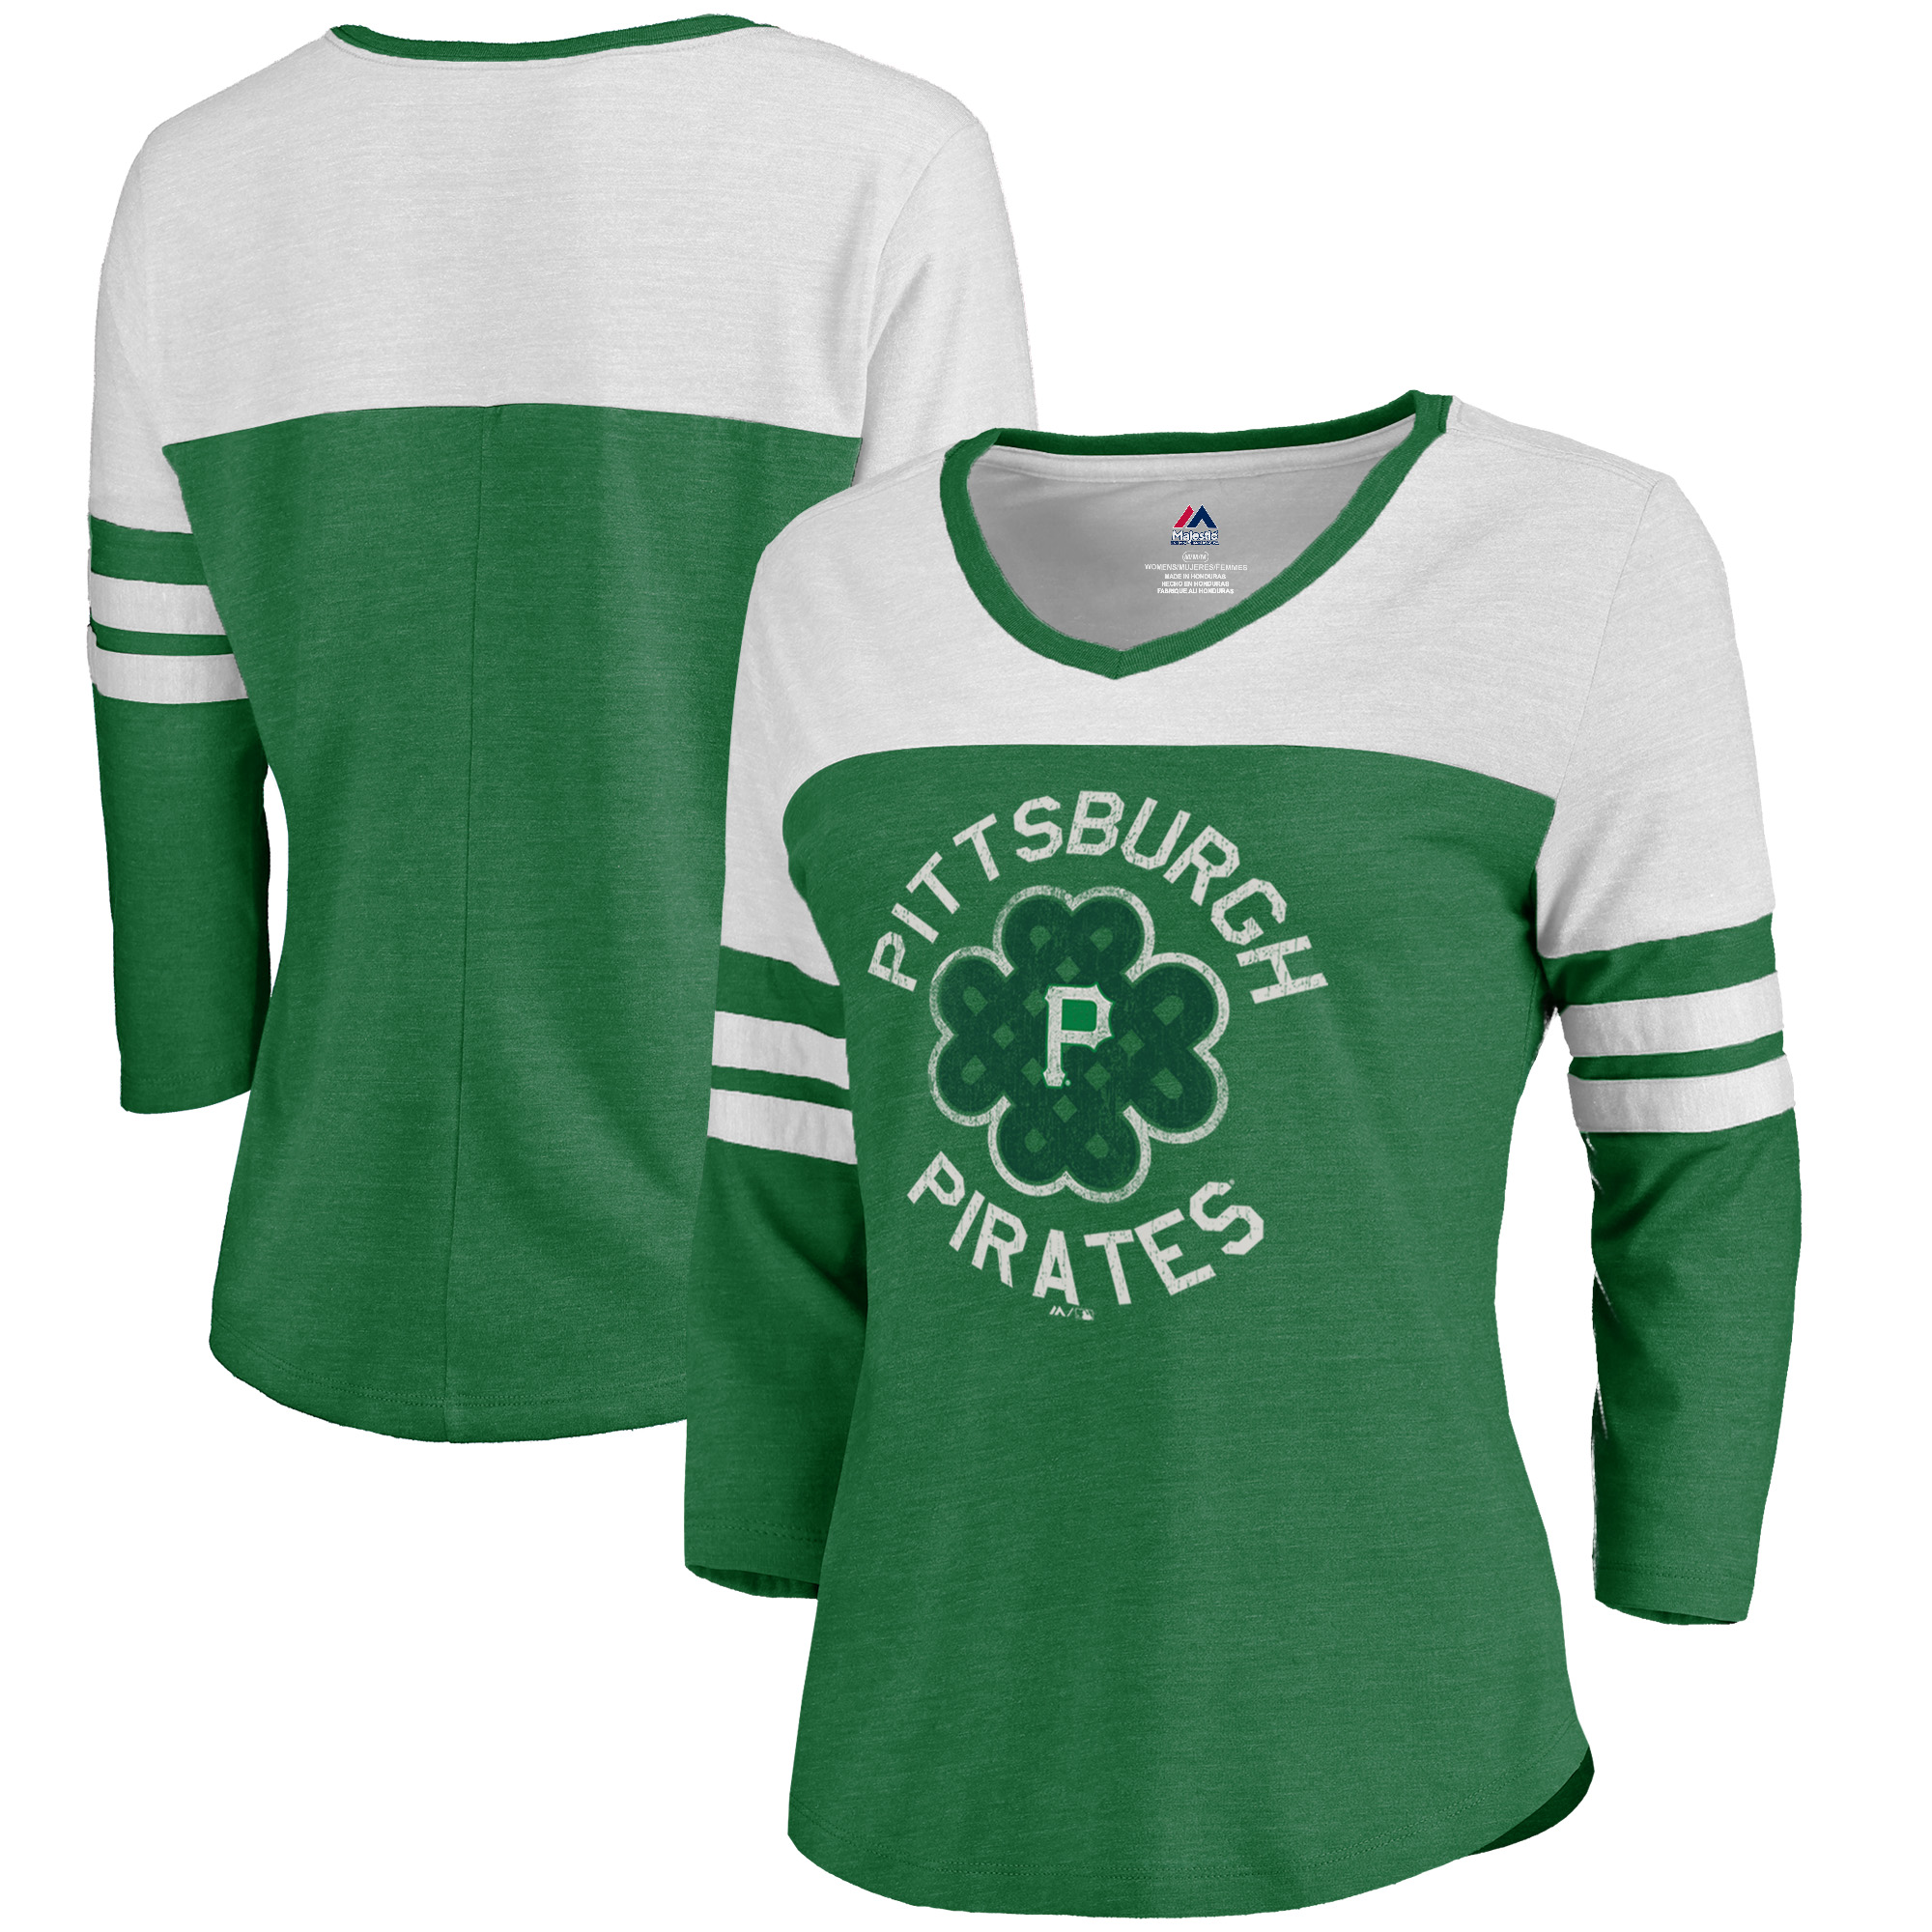 Pittsburgh Pirates Majestic Women's Luck Tradition Color Block 3/4-Sleeve Tri-Blend V-Neck T-Shirt - Kelly Green